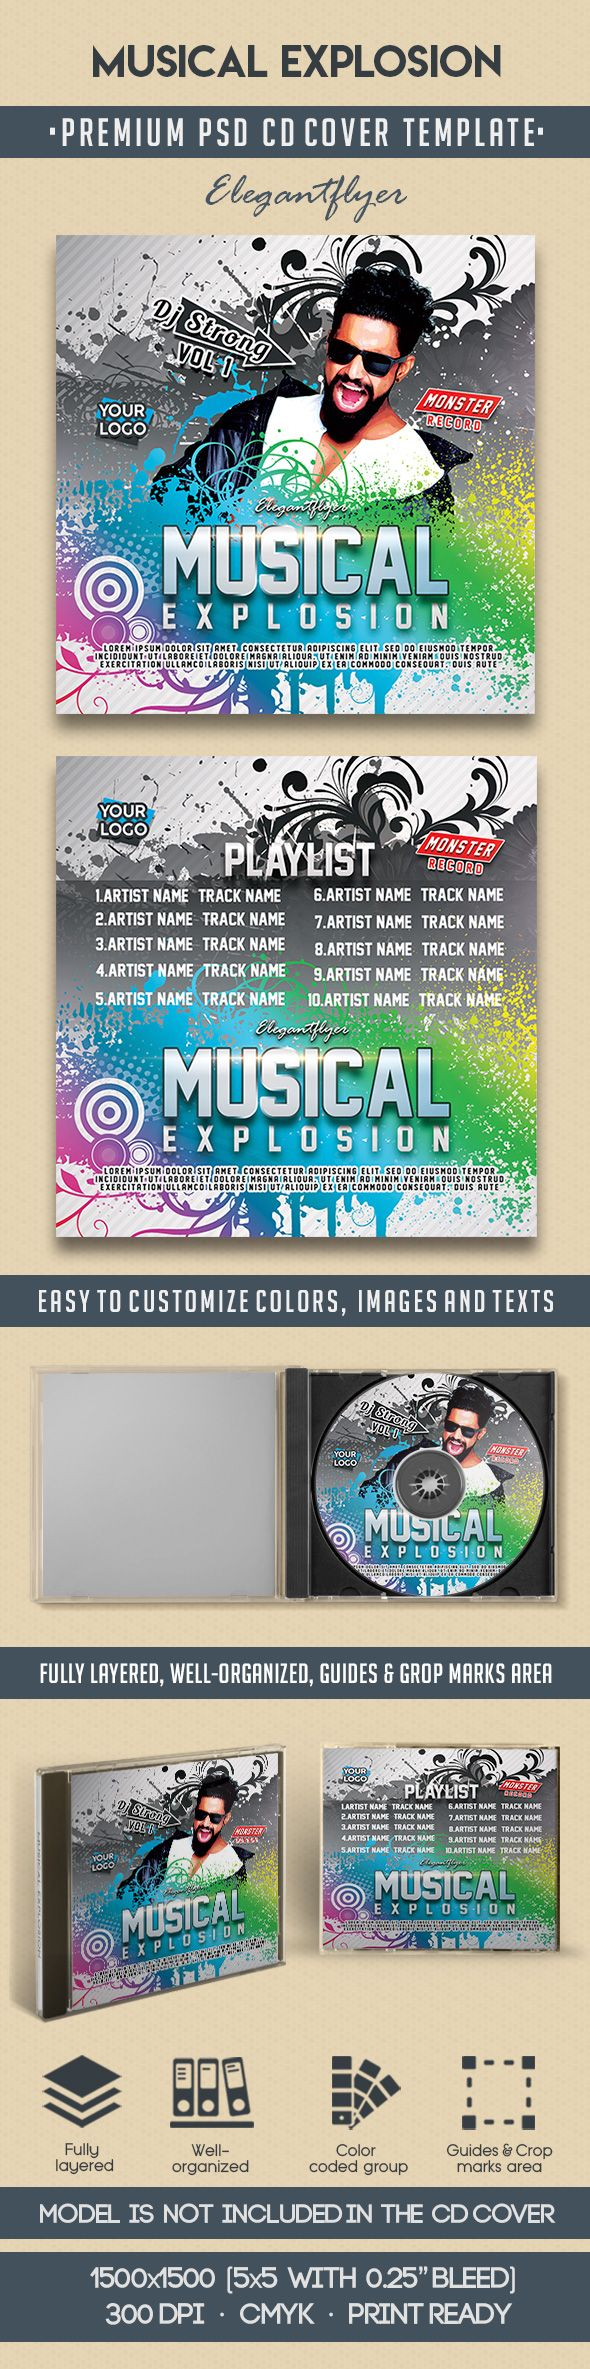 Musical Explosion – Premium CD Cover PSD Template